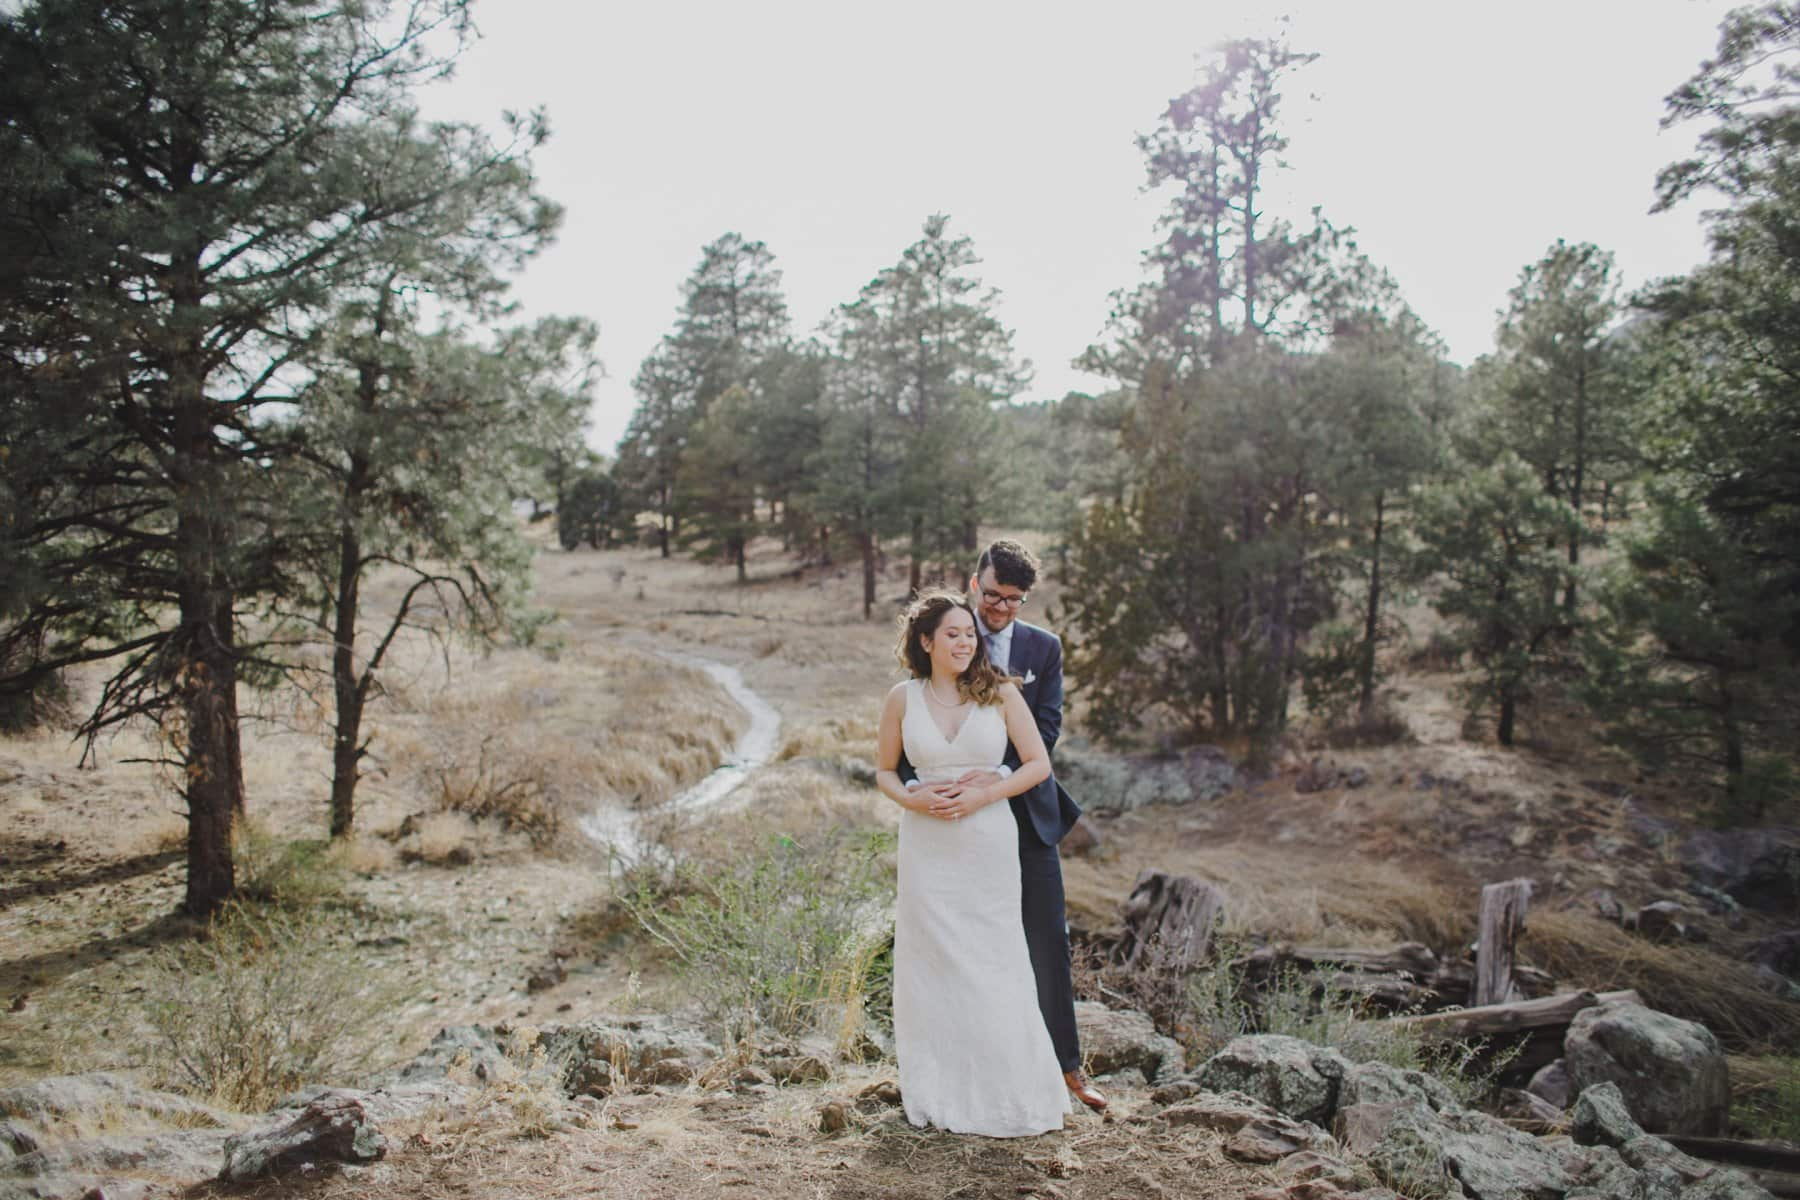 Flagstaff elopement along a creek with pine trees